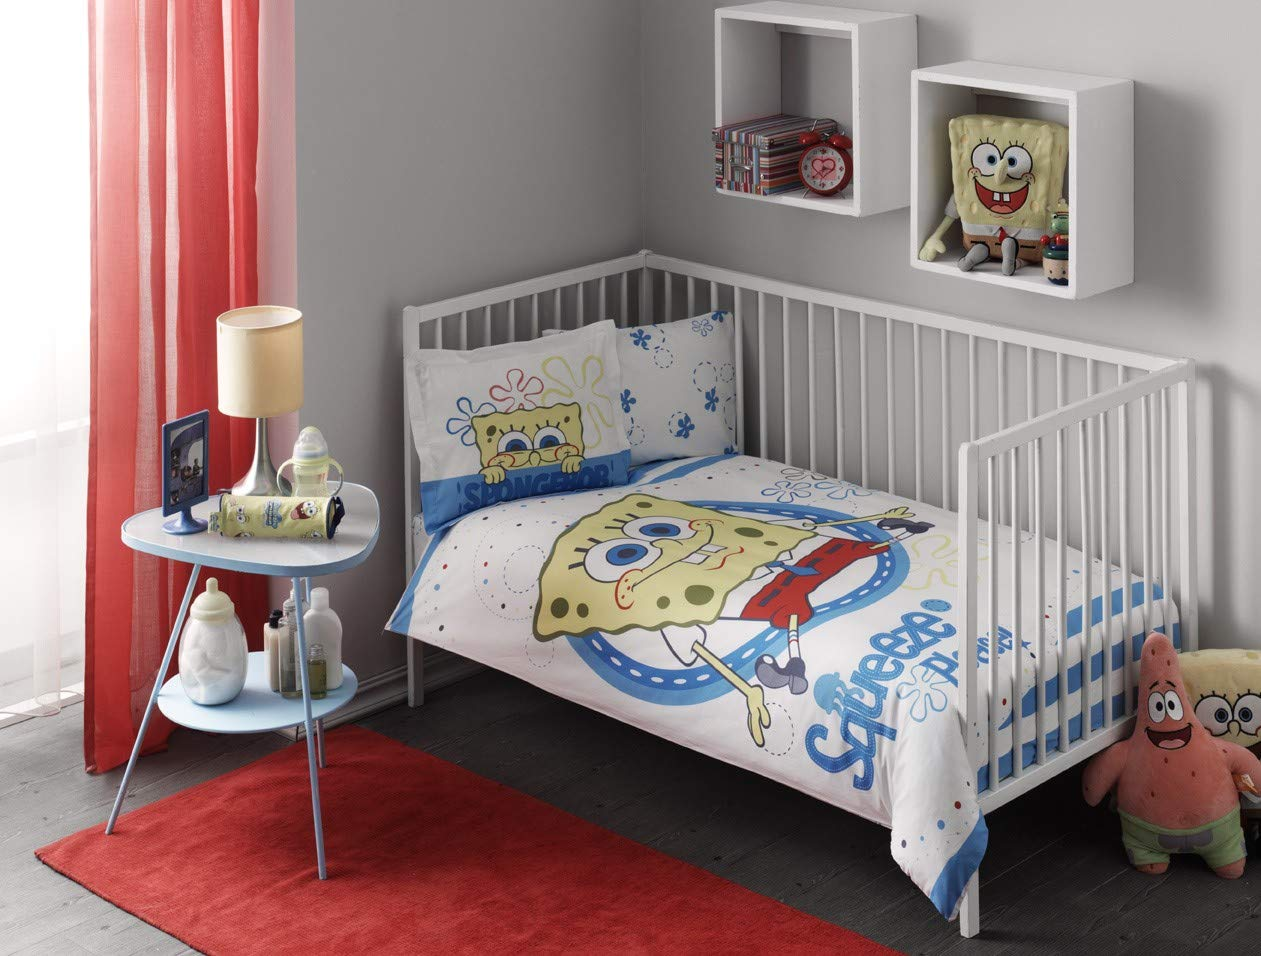 100% Cotton Baby Bedding Spongebob Themed Nursery Baby Bed Set, Toddlers Crib Bedding for Baby Girls, Duvet Cover Set with Comforter, 5 Pieces 715dwM8nMwL._SL1261_